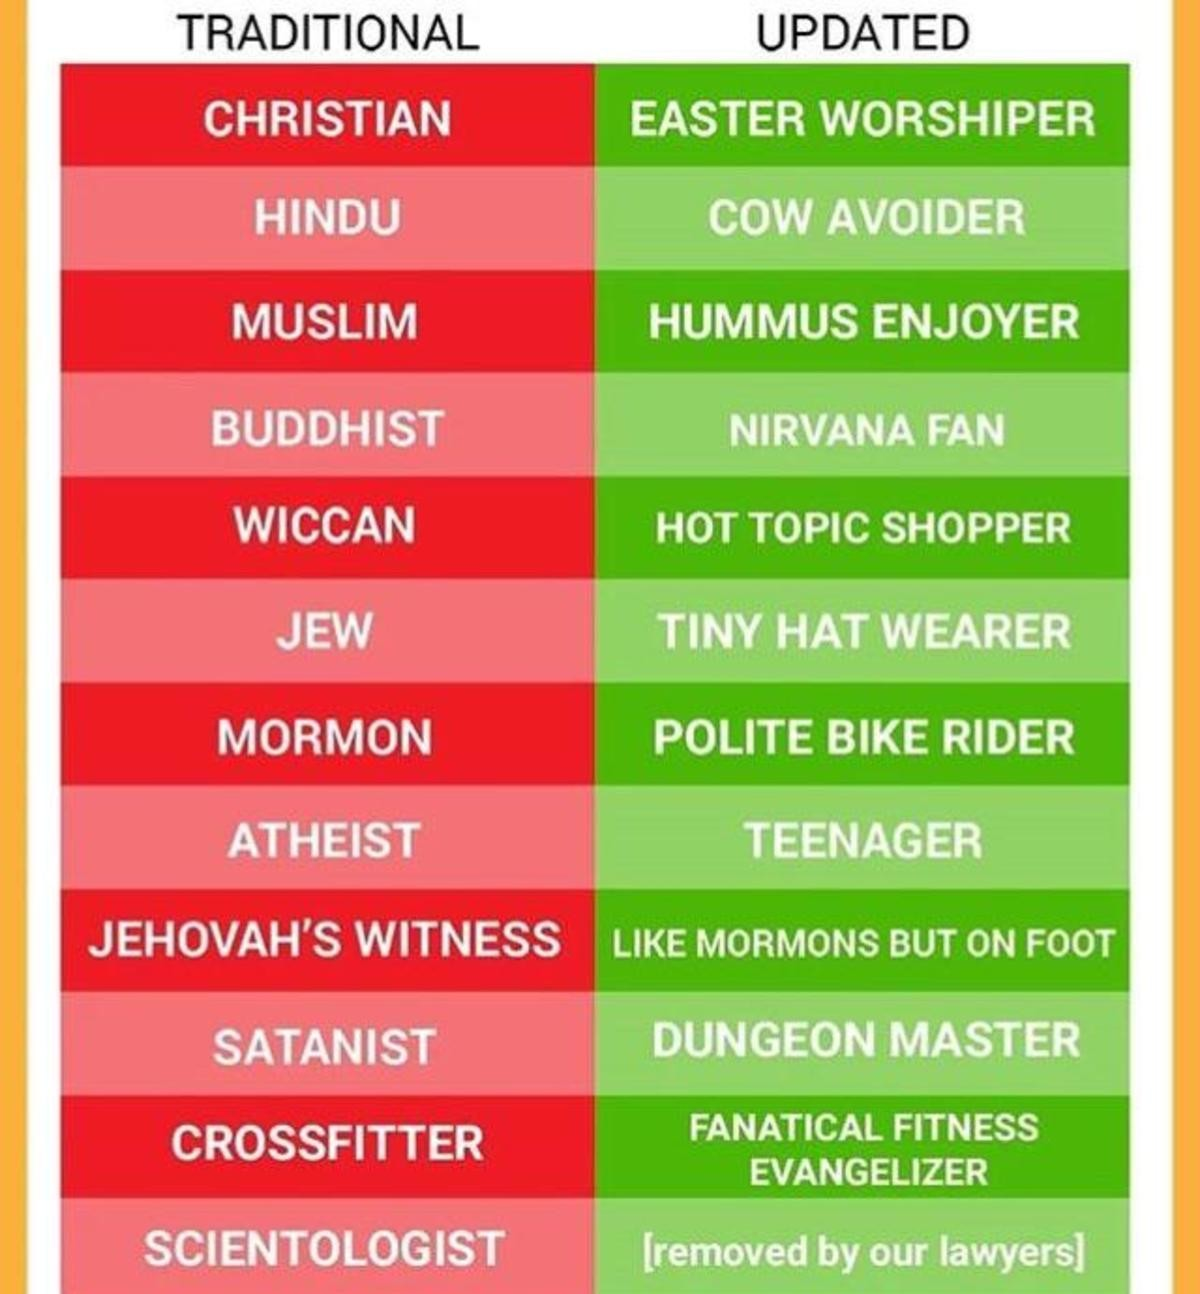 Updated religious terms. join list: PoliticalAutism (829 subs)Mention Clicks: 126278Msgs Sent: 577959Mention History.. I bet the tiny hat wearers did this...